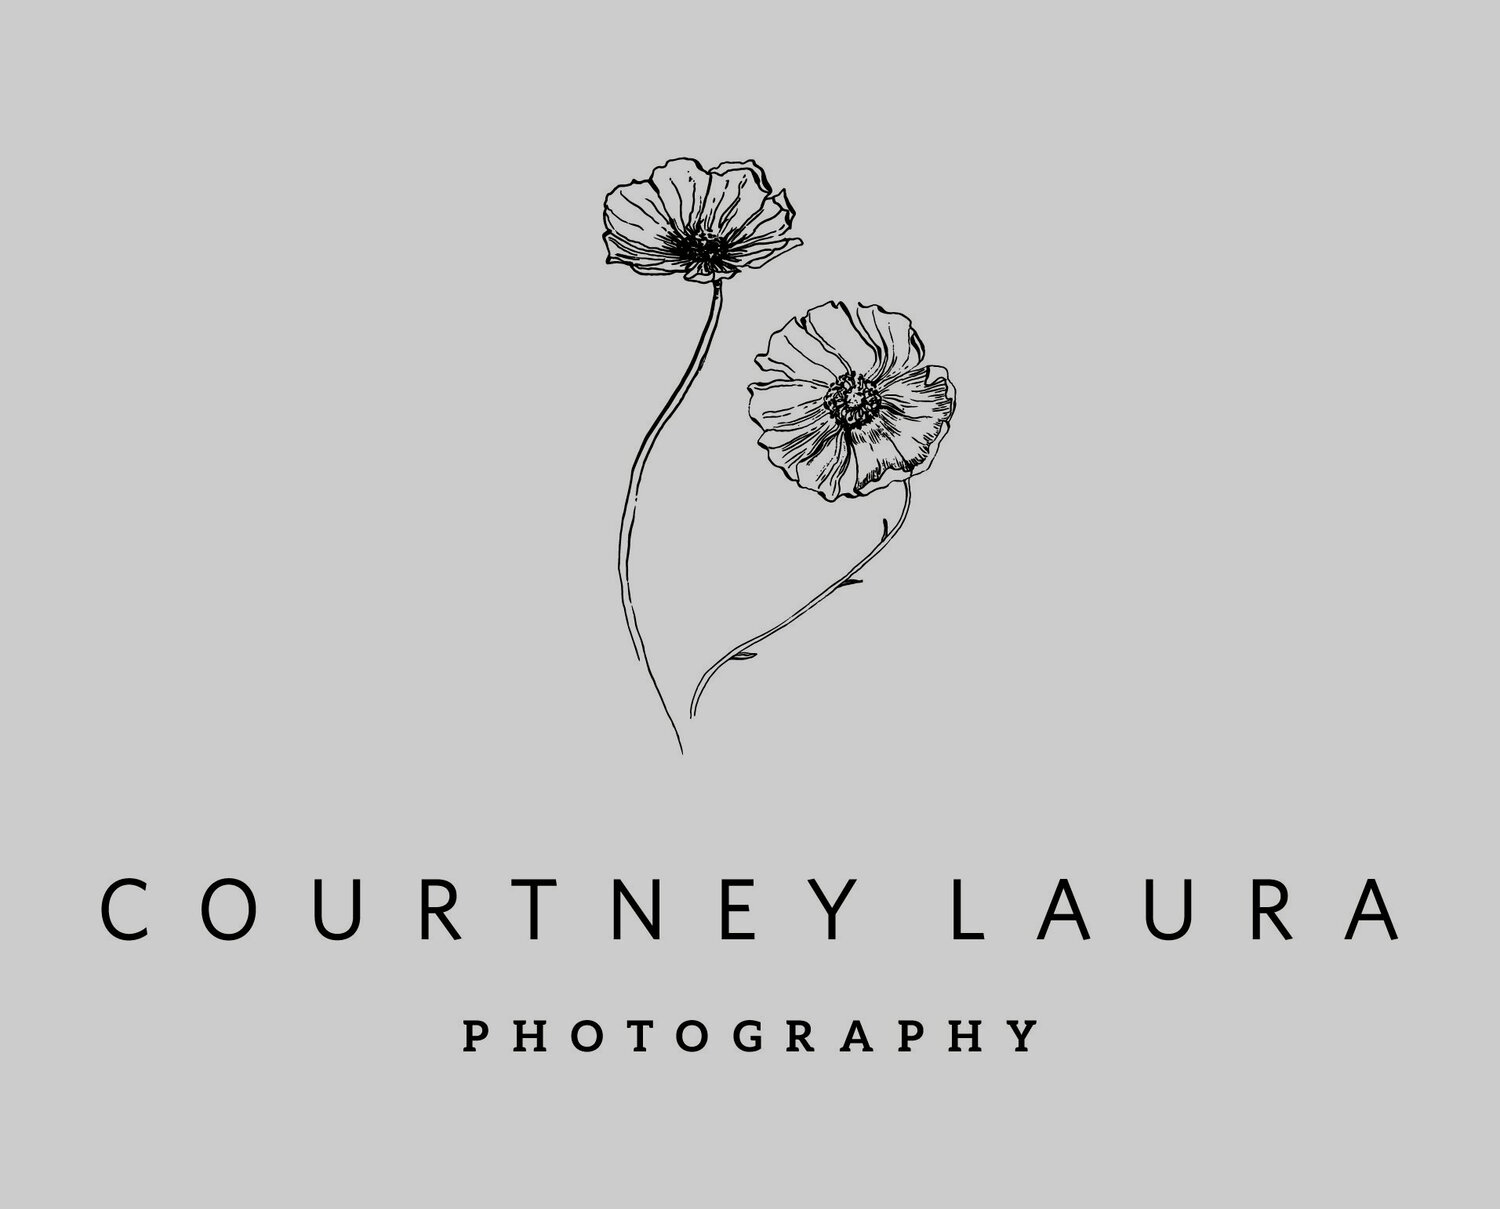 Courtney Laura Photography